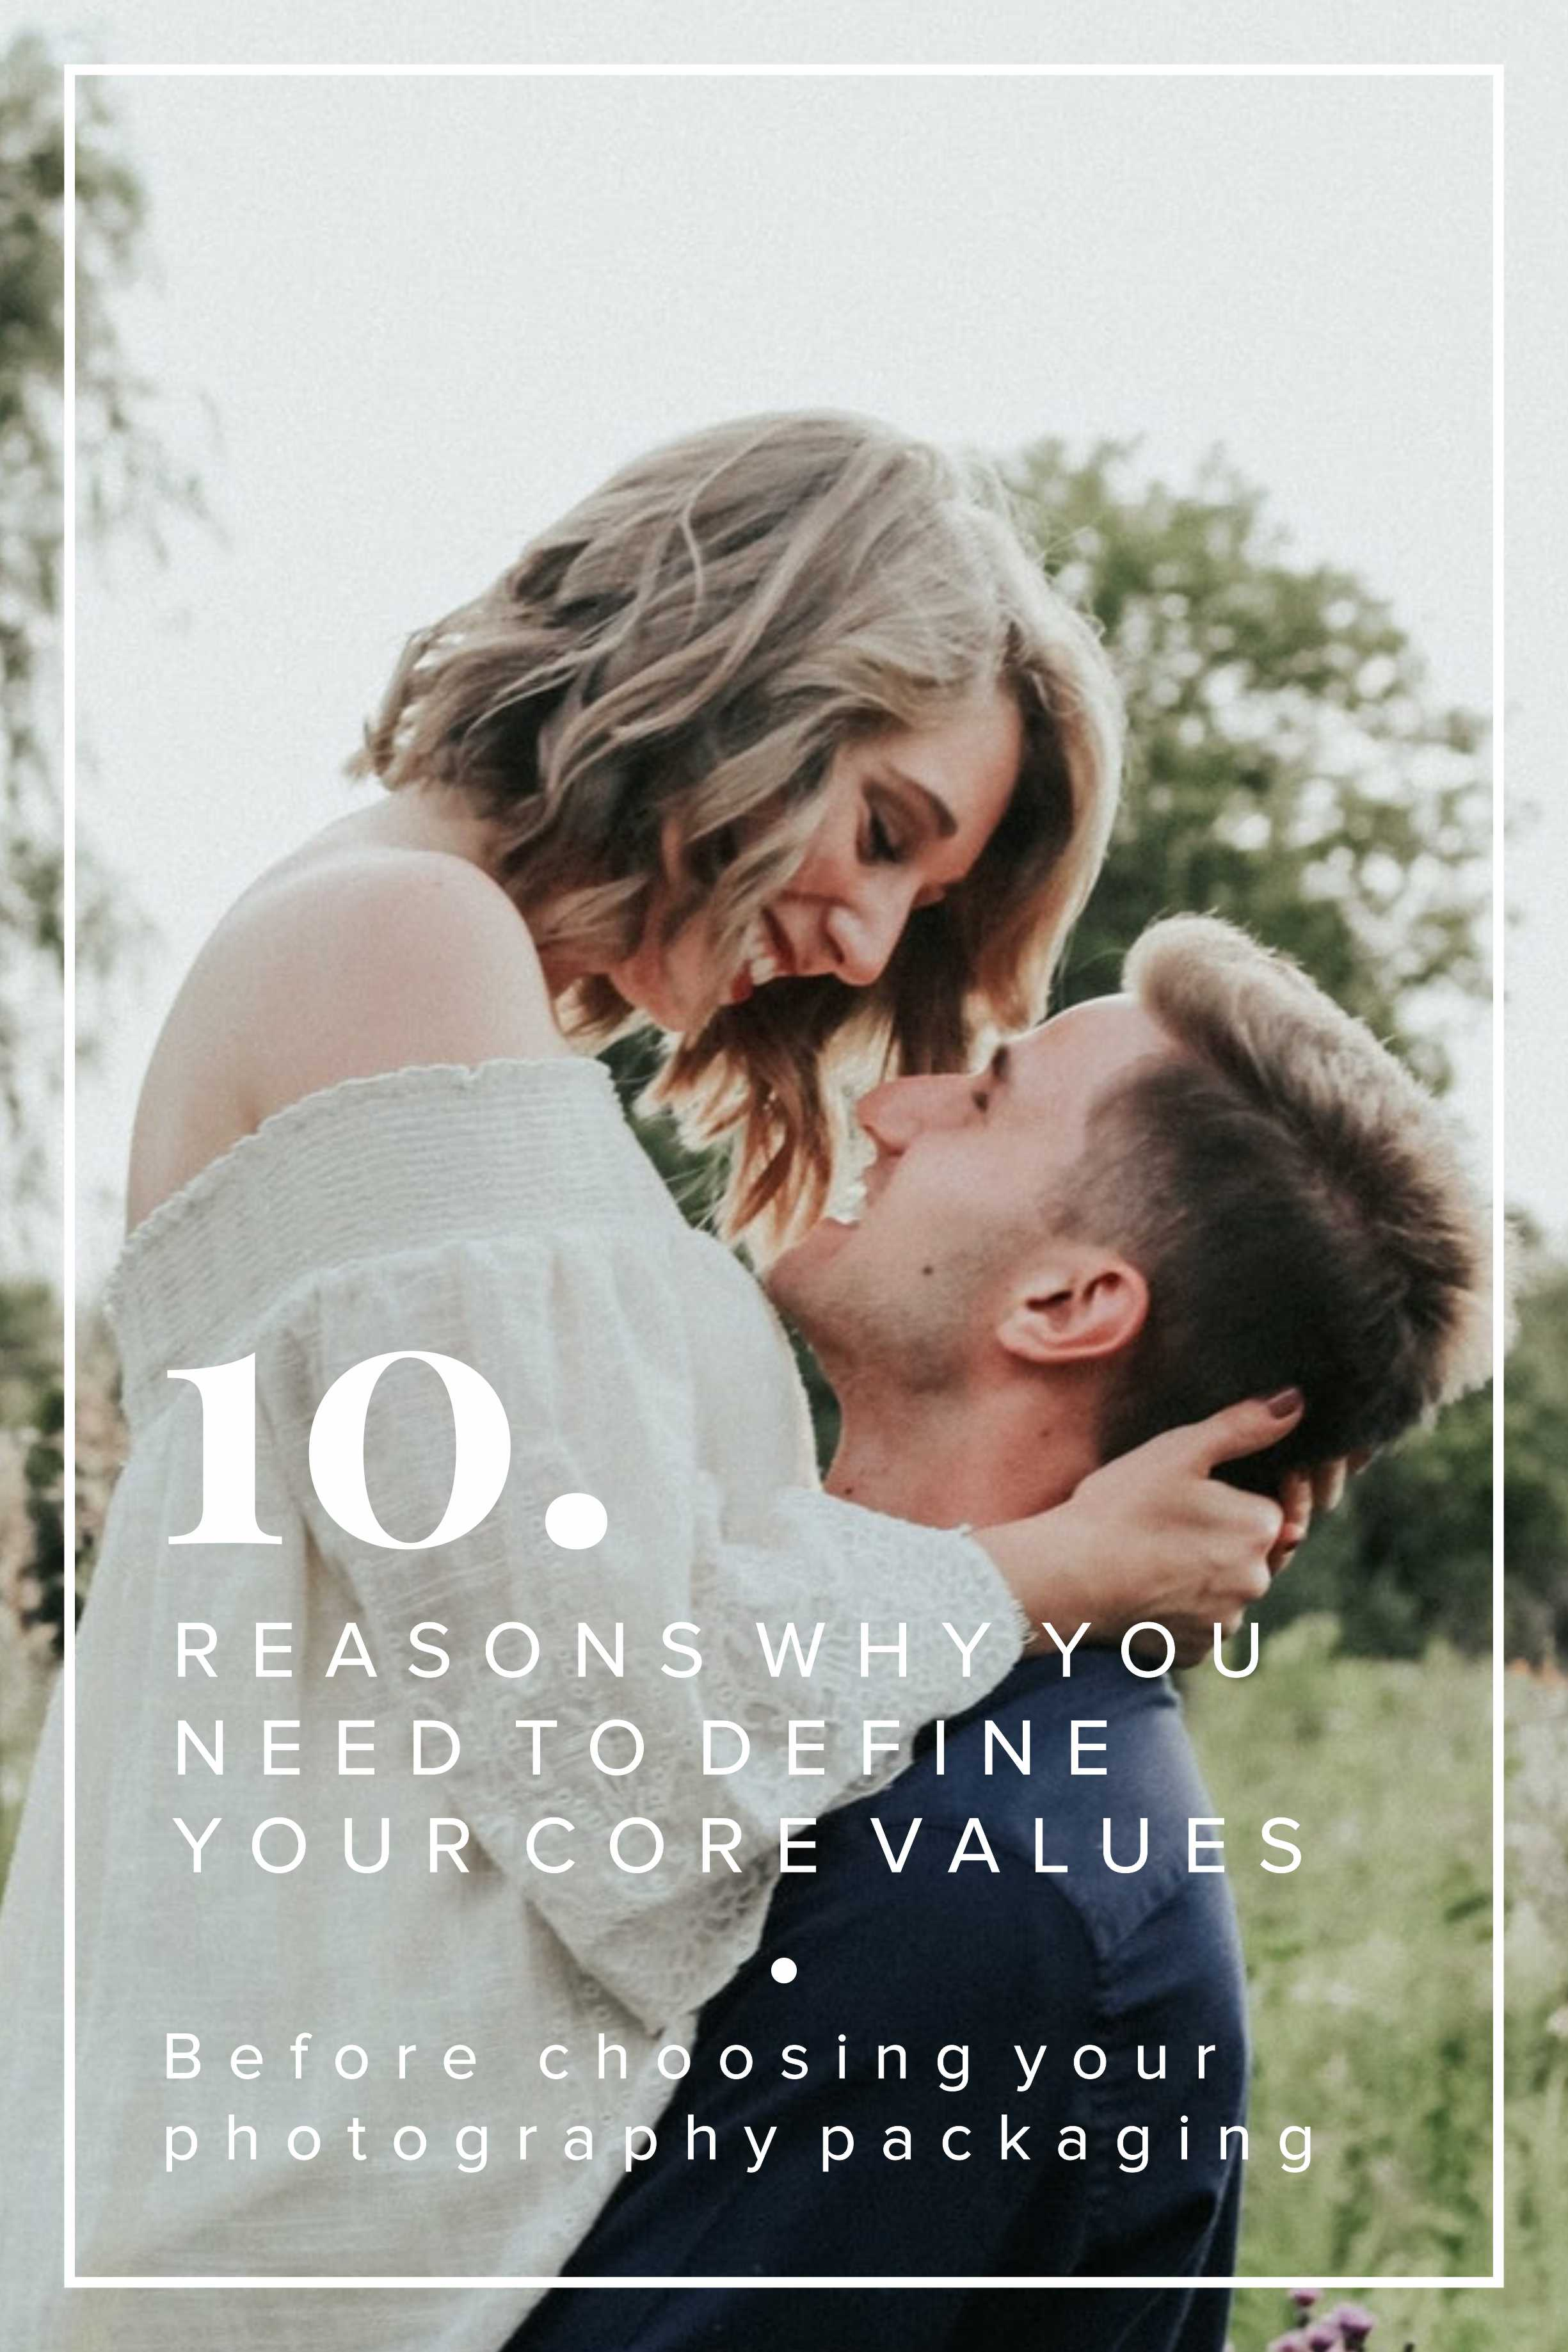 Molly-and-Tom-Define-Core-Values-Photography-Packaging.jpg